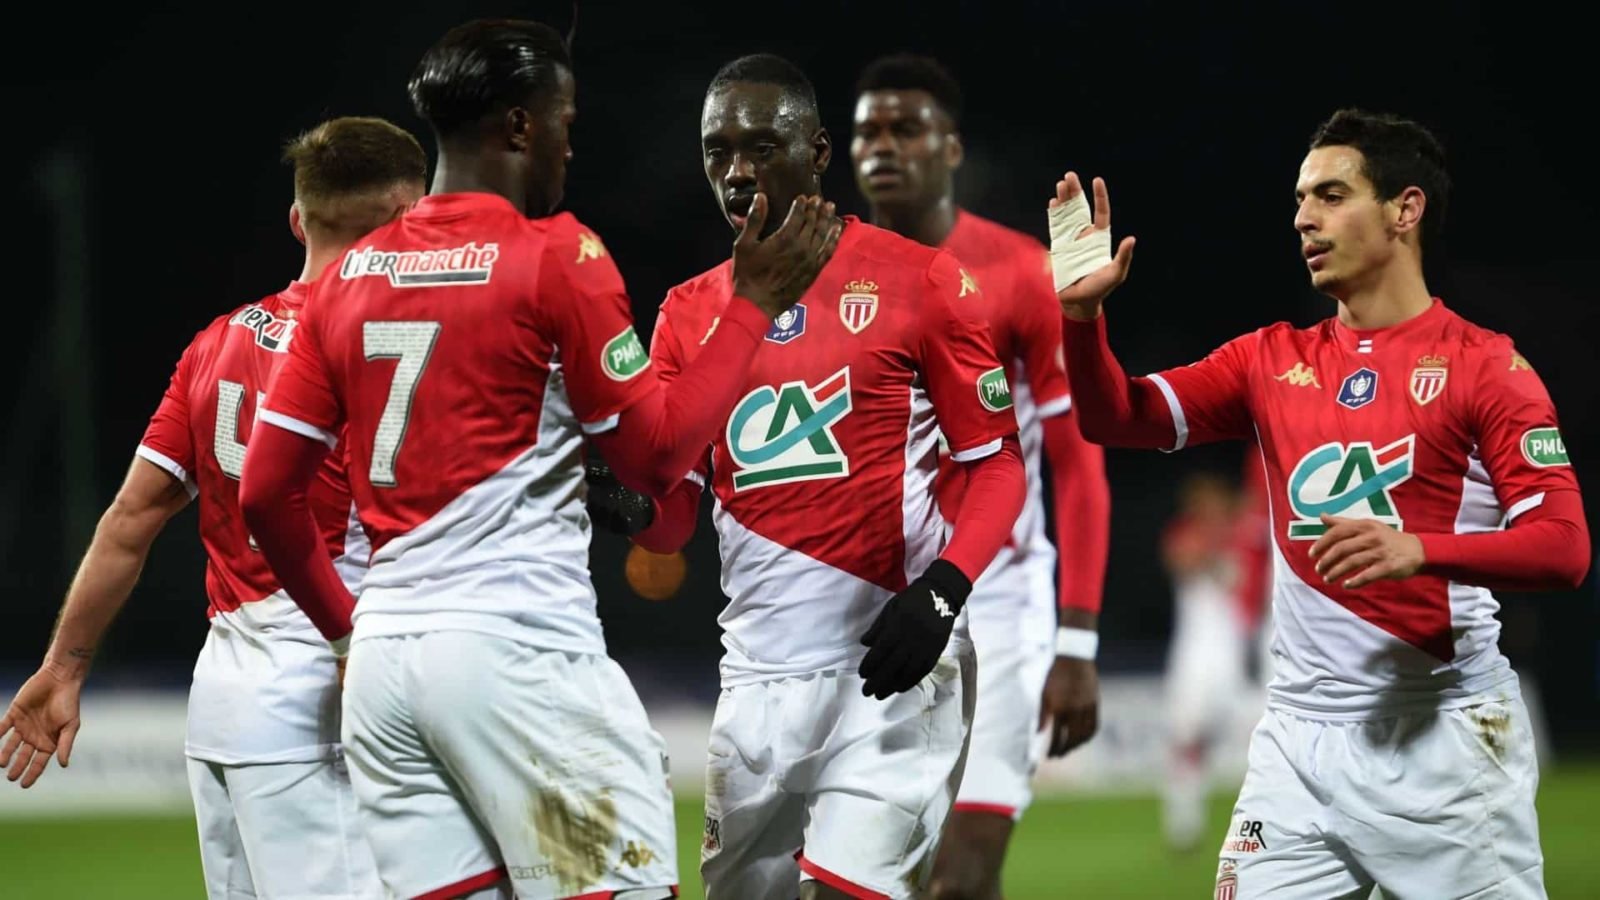 french-cup:-keita-balde's-brace-powers-monaco-past-st-pryve-st-hilaire